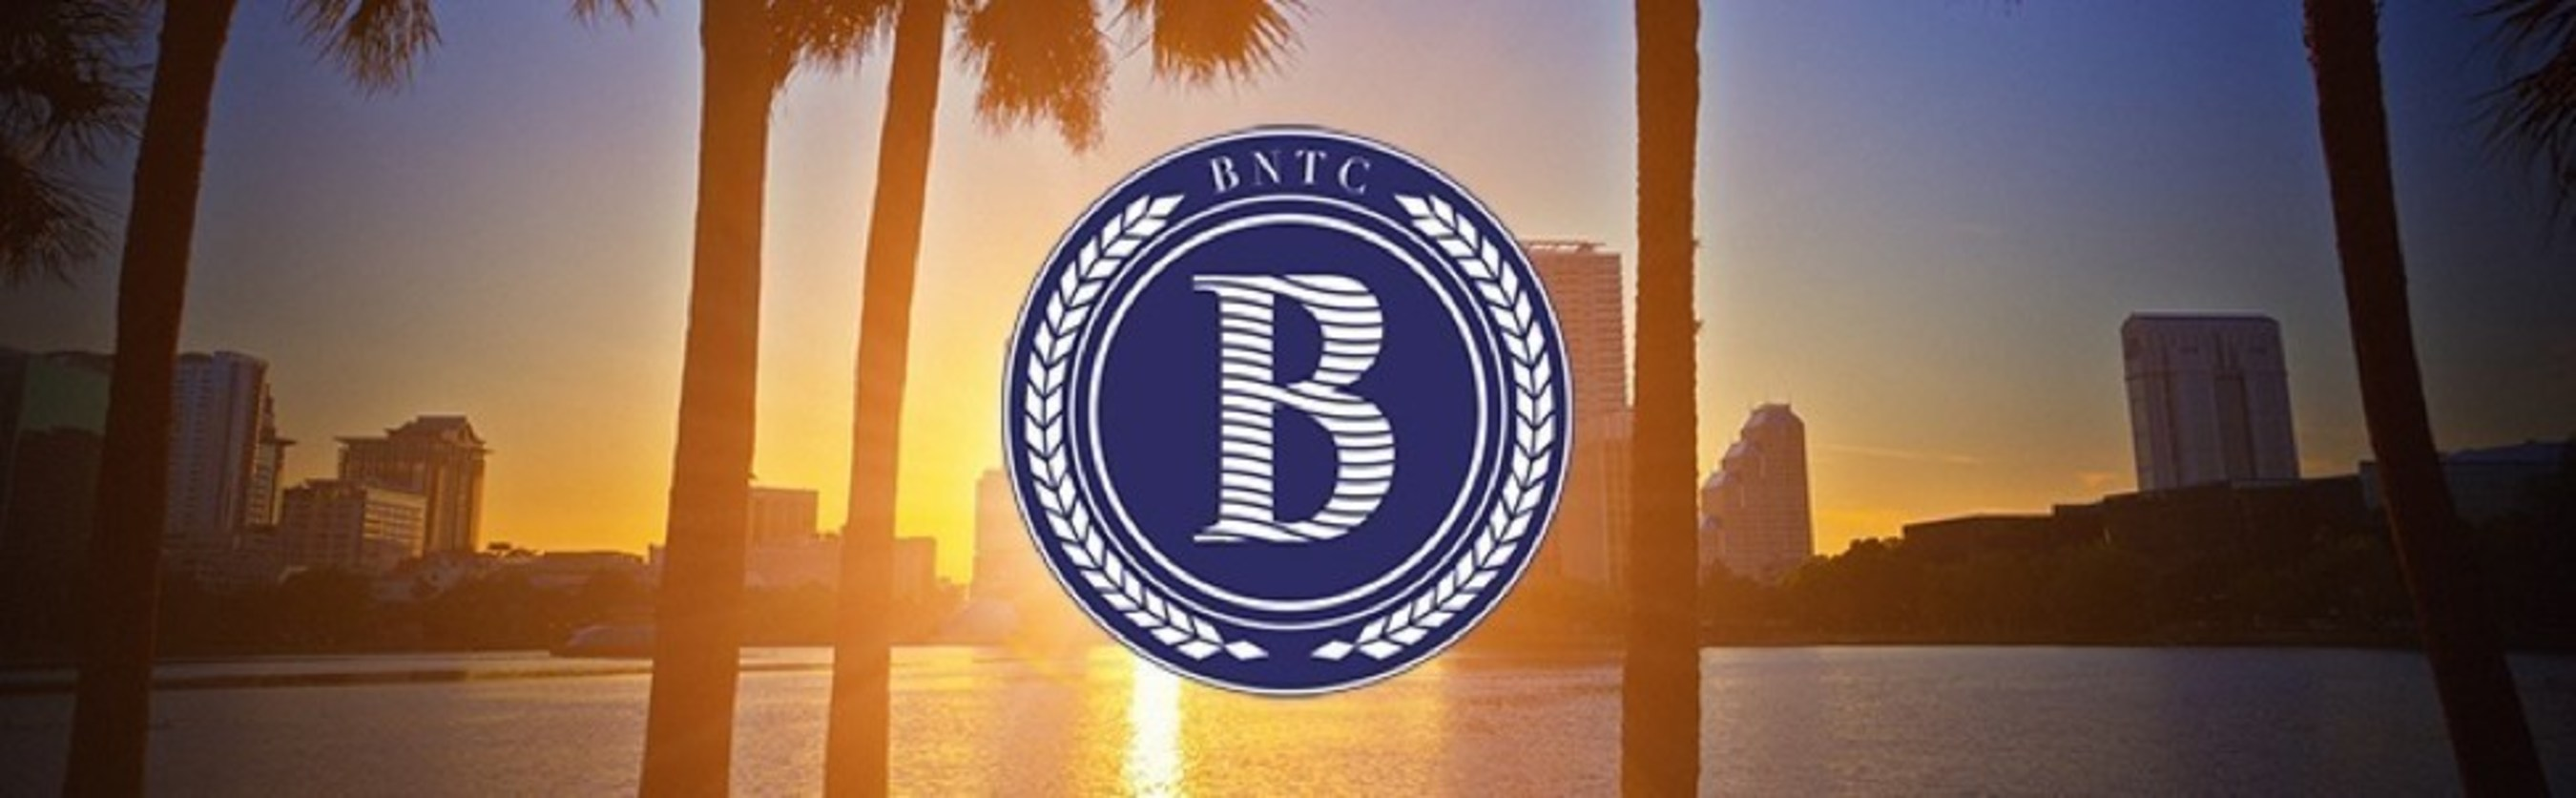 BNTC expands Title Insurance Services with Lake Mary Office in Florida